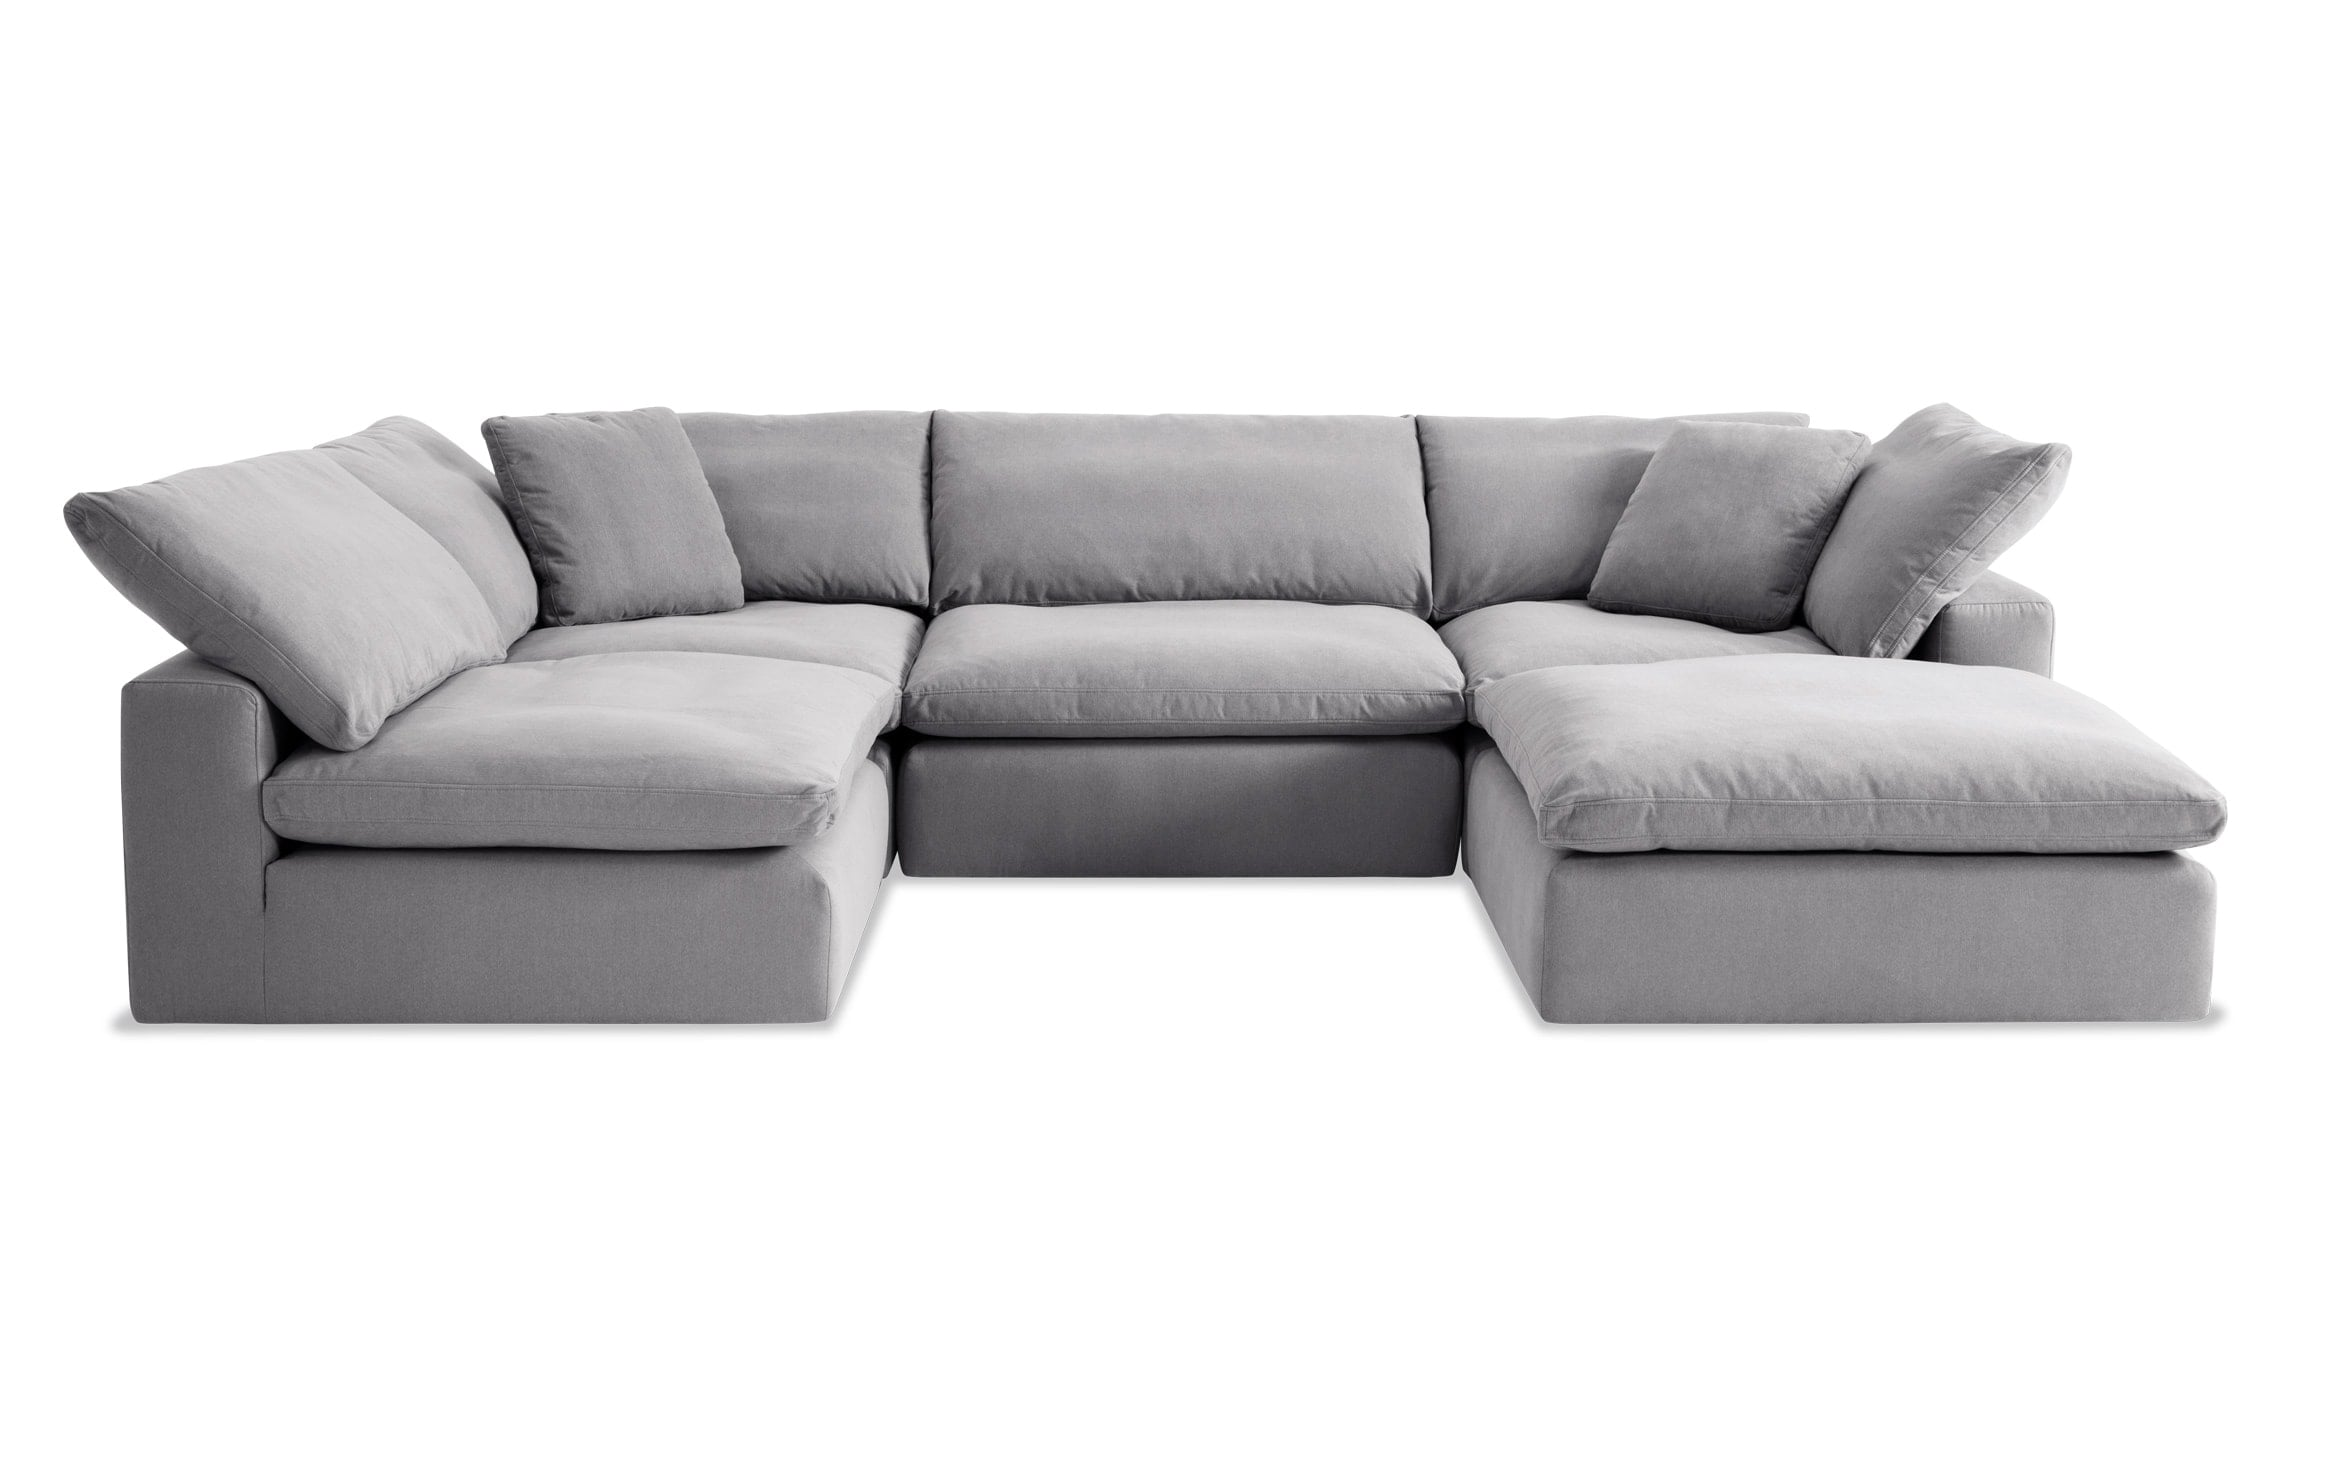 Dream Gray Modular 5 Piece Sectional